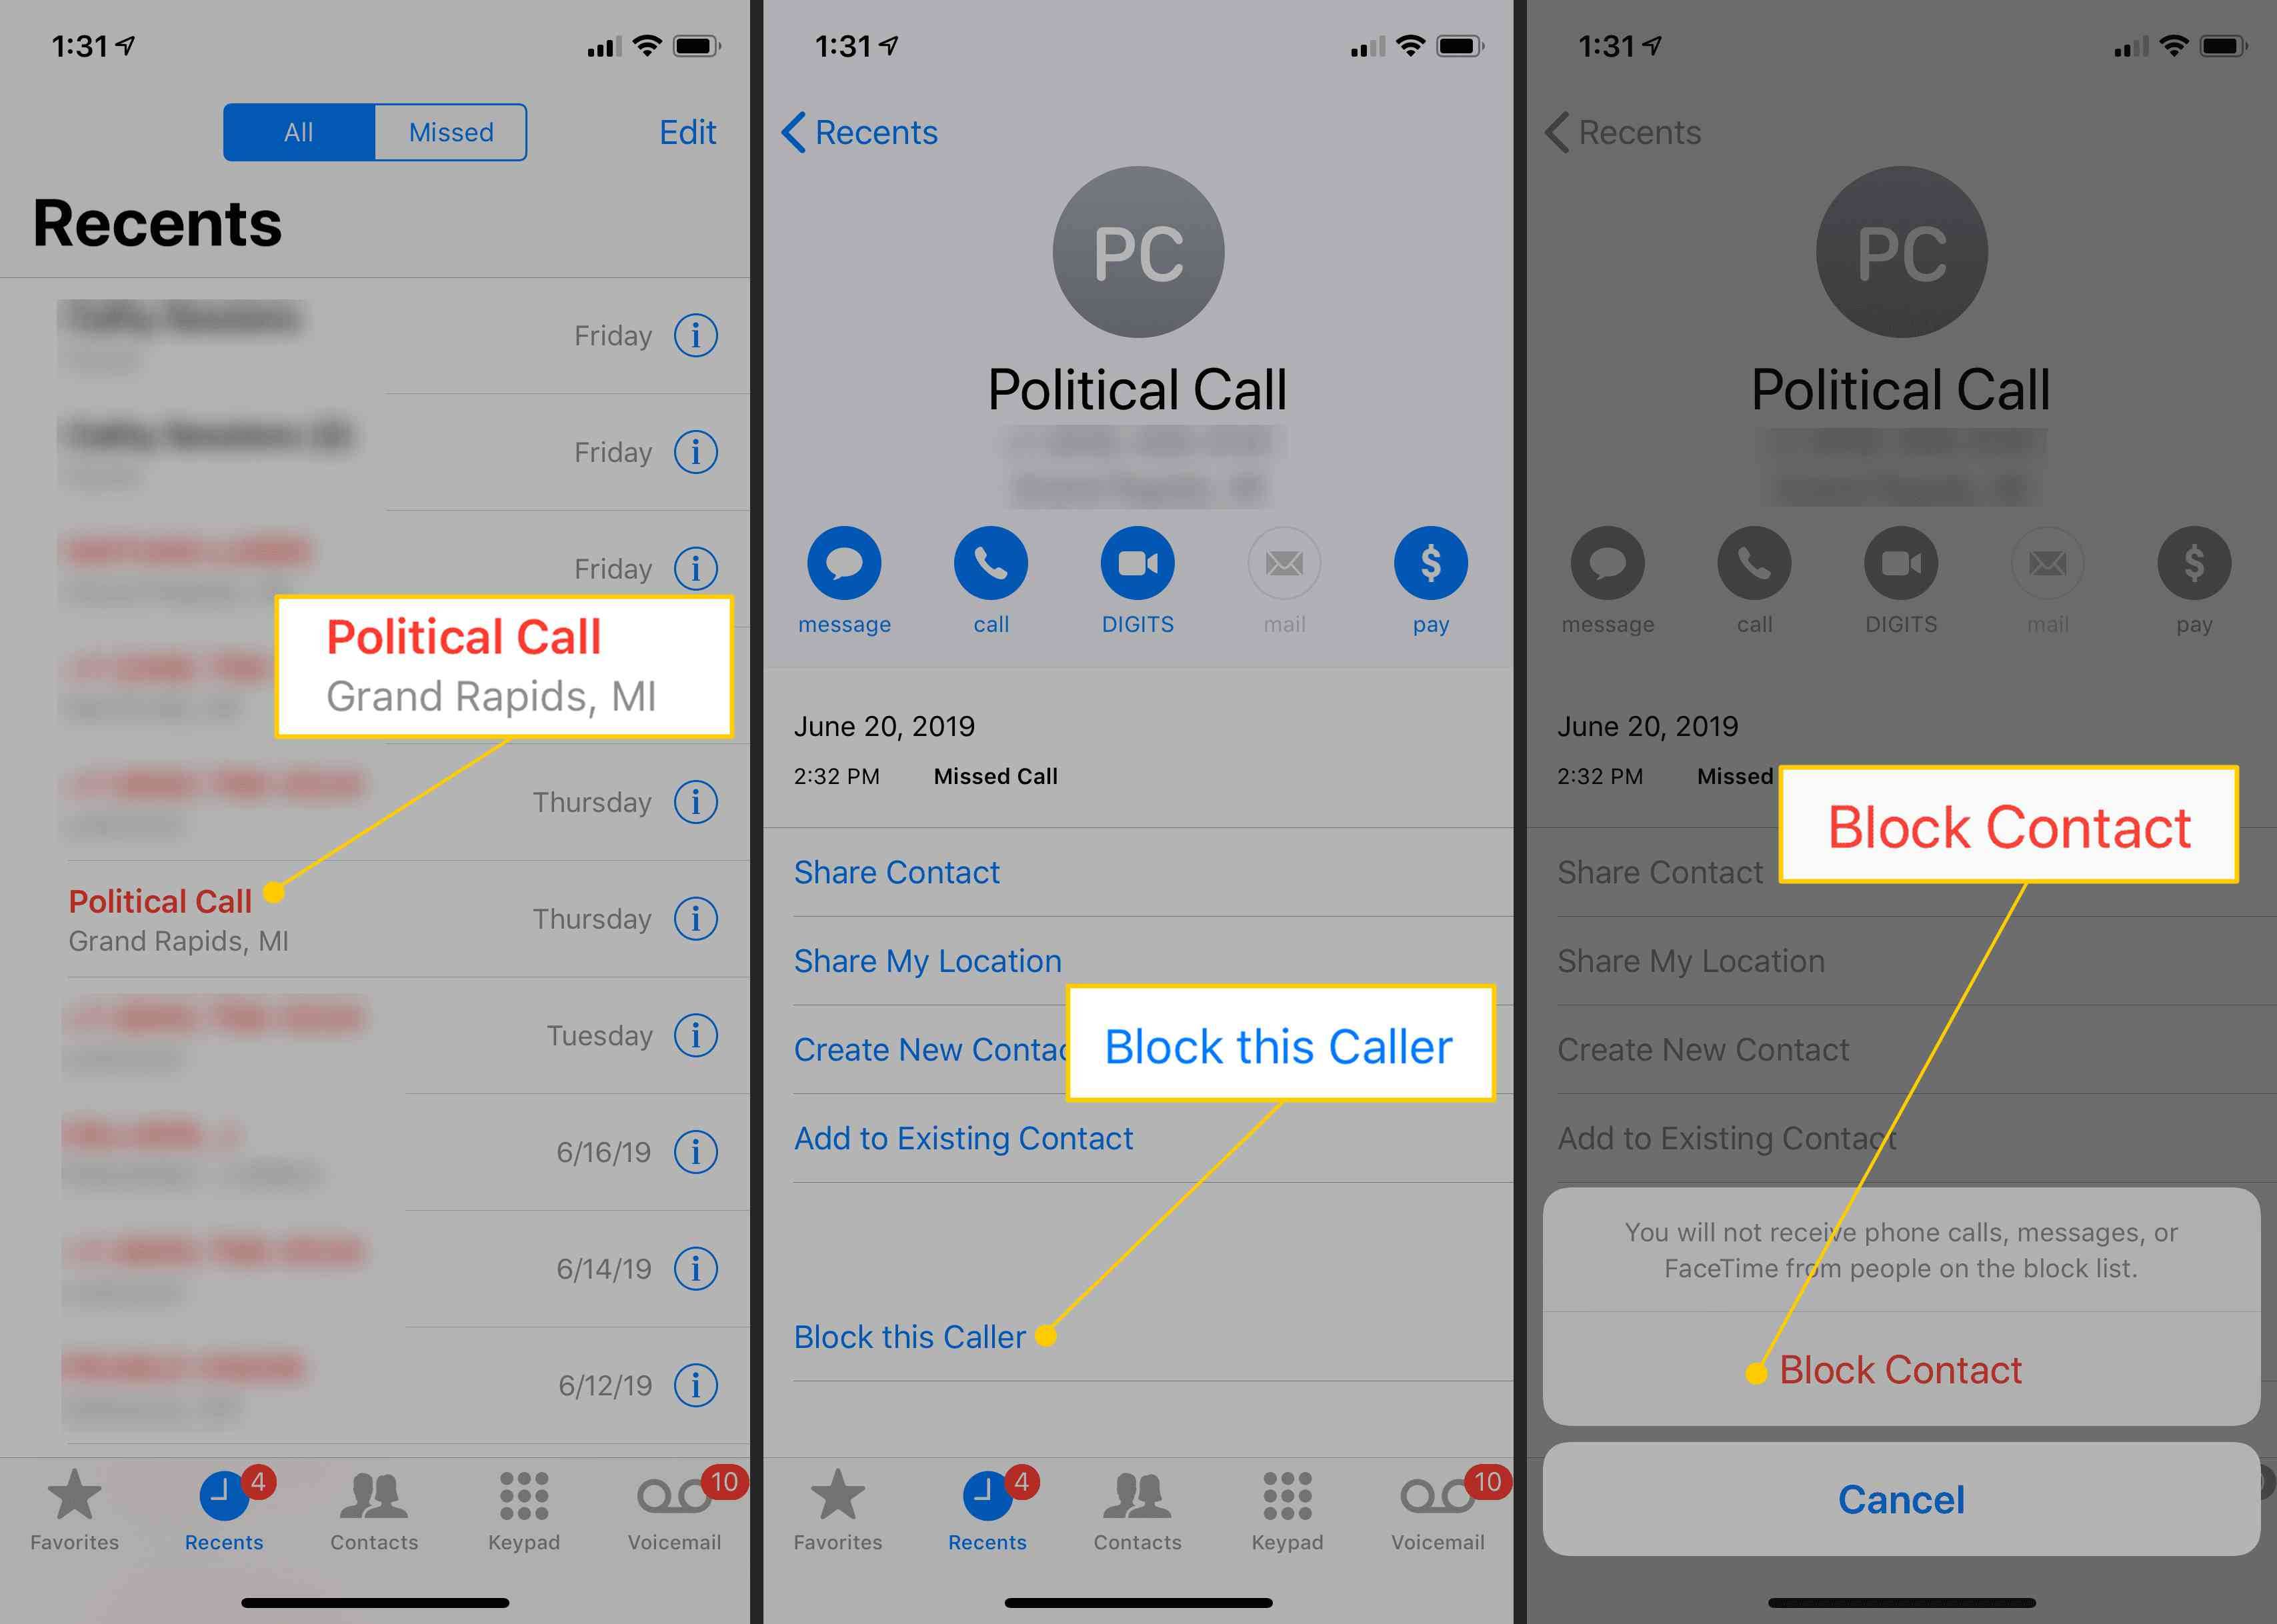 Call record in Recents, Block this Caller button, Block Contact confirmation on iPhone